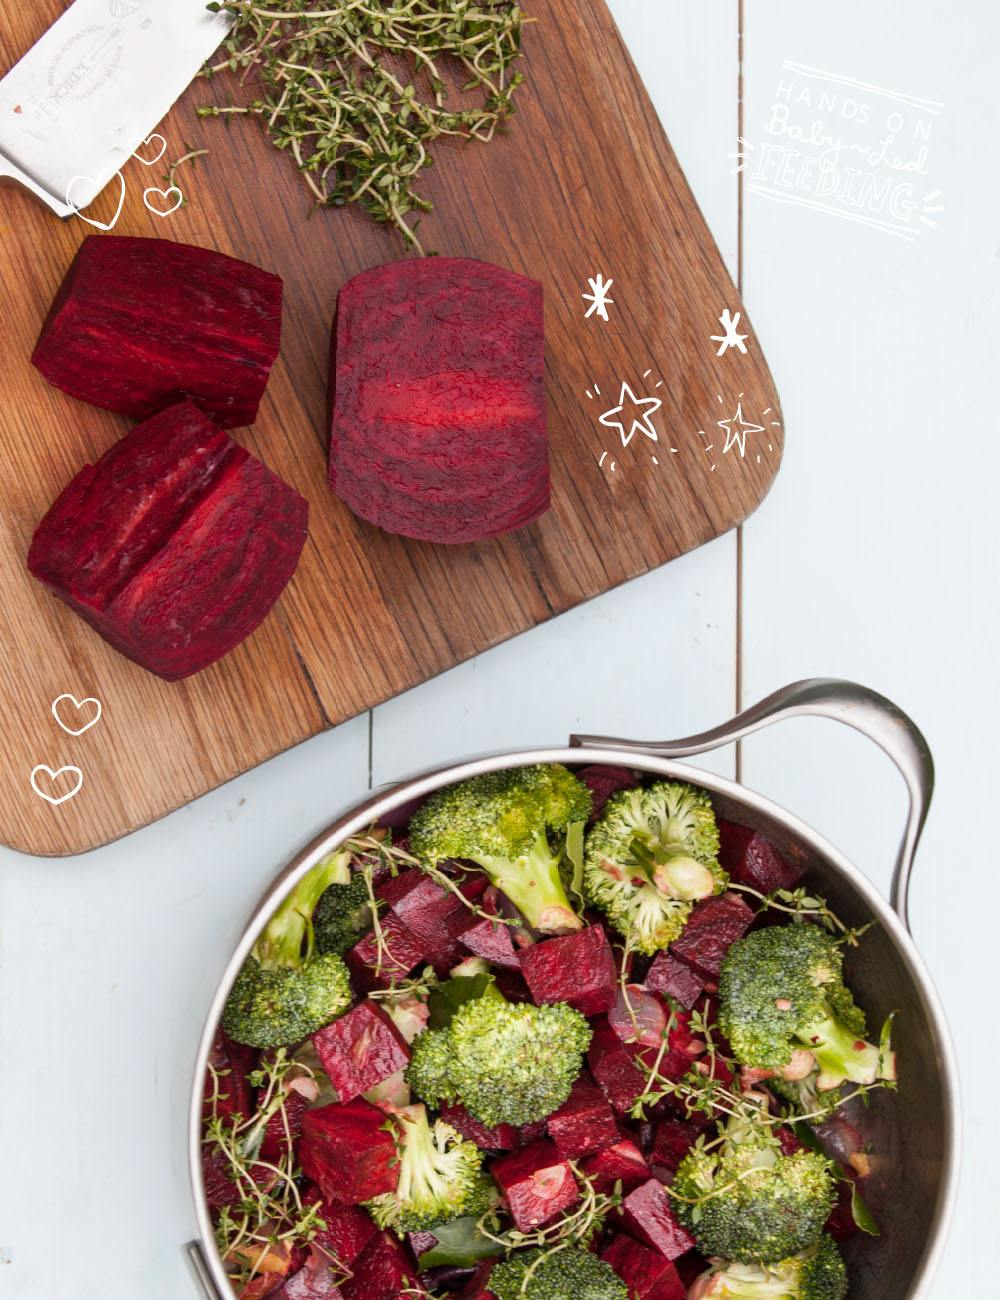 Easy and healthy beetroot and ginger soup for baby led weaning, toddlers, and parents alike. Made with colorful beetroot, flavorful fresh ginger, onion, hearty broccoli, nutty coconut milk, served with fresh yogurt and thyme. #beetroot #soup #souprecipe #valentinesdayideas #valentines #babyledweaning #babyledfeeding #soupinspiration